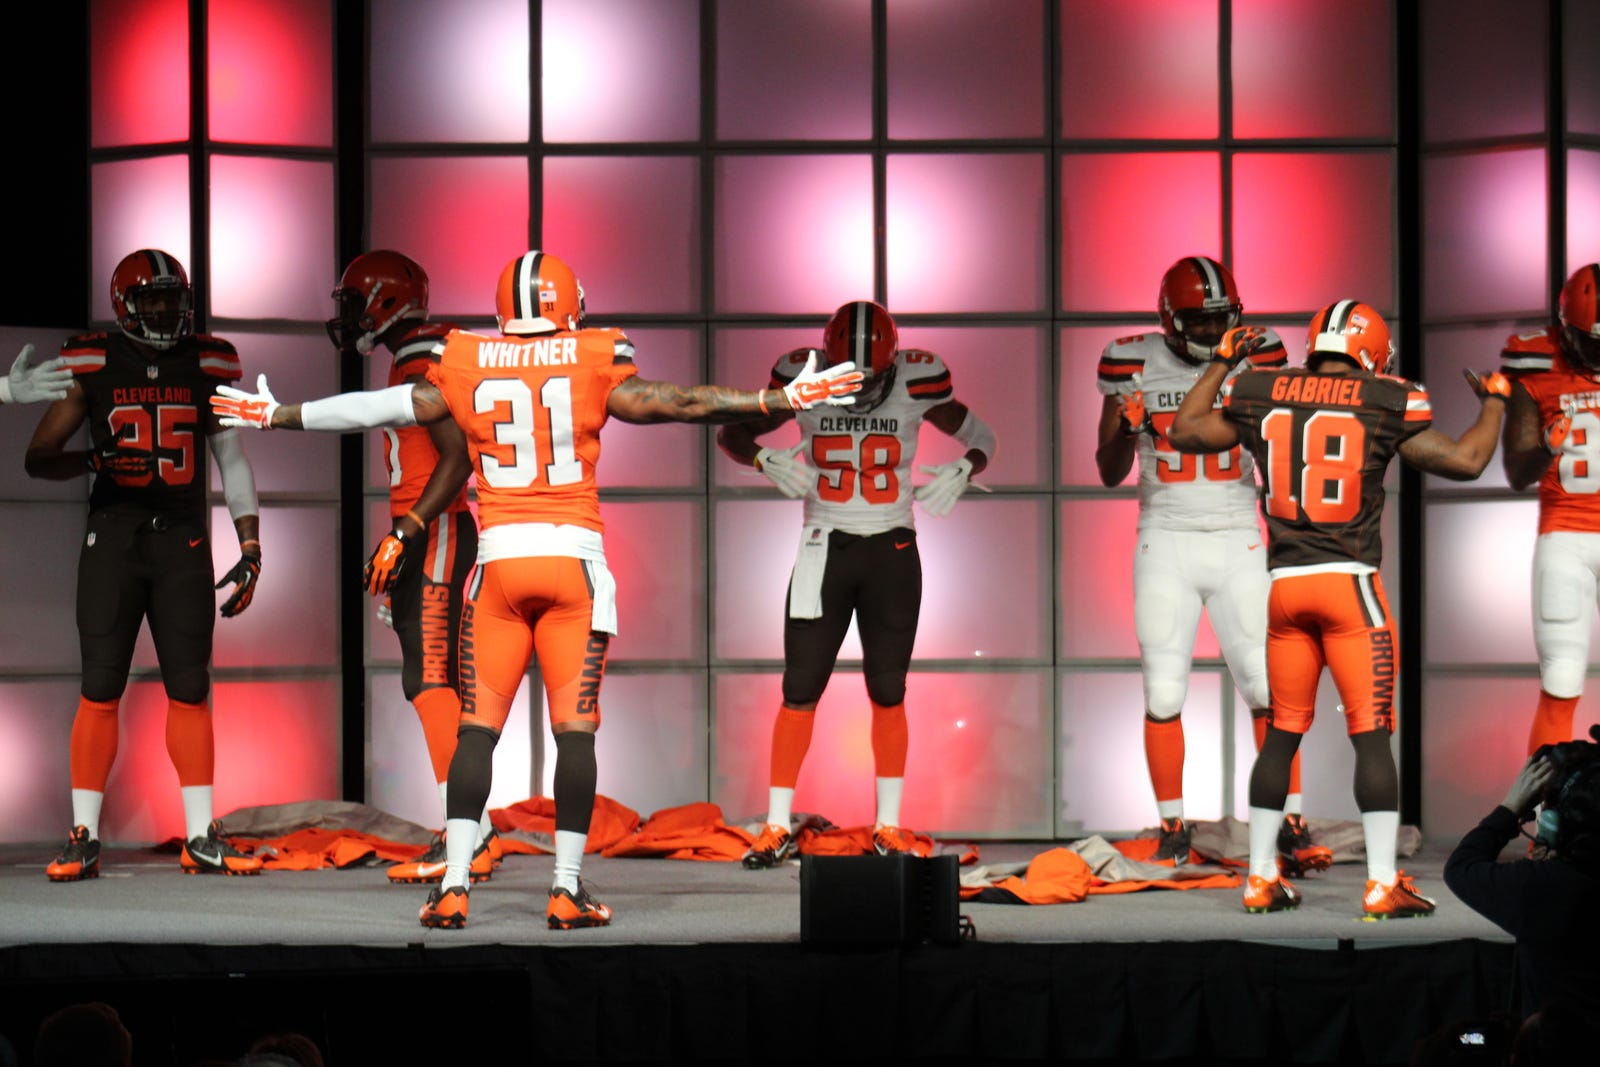 IMAGE(https://images.radio.com/wkrkfm/s3fs-public/browns%20new%20uniforms.jpg)